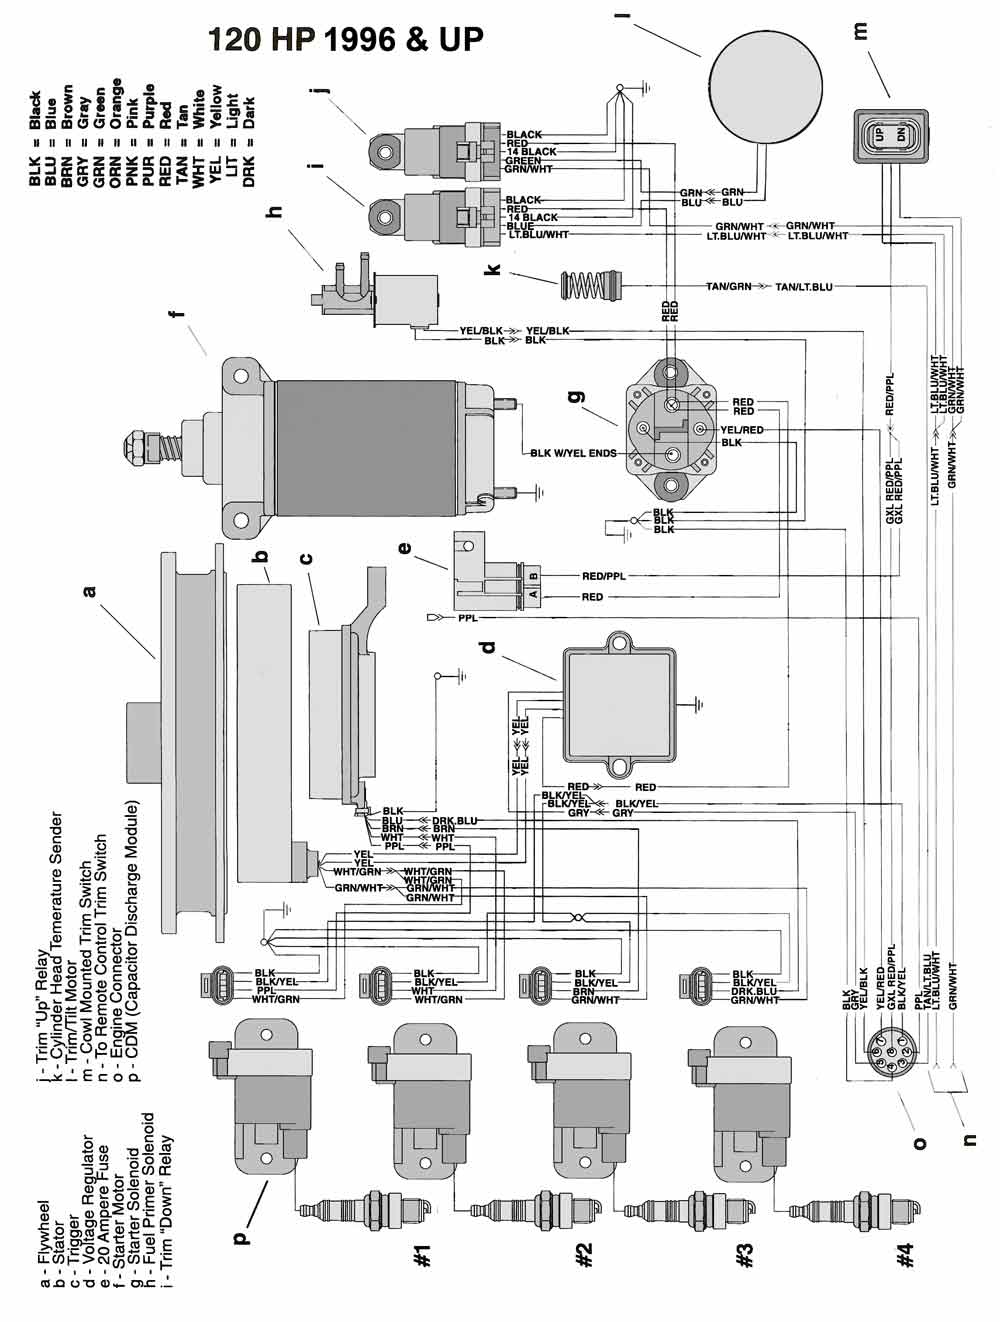 V6 Crossflow Omc Wiring Diagram - Wiring Diagram & Cable ... on